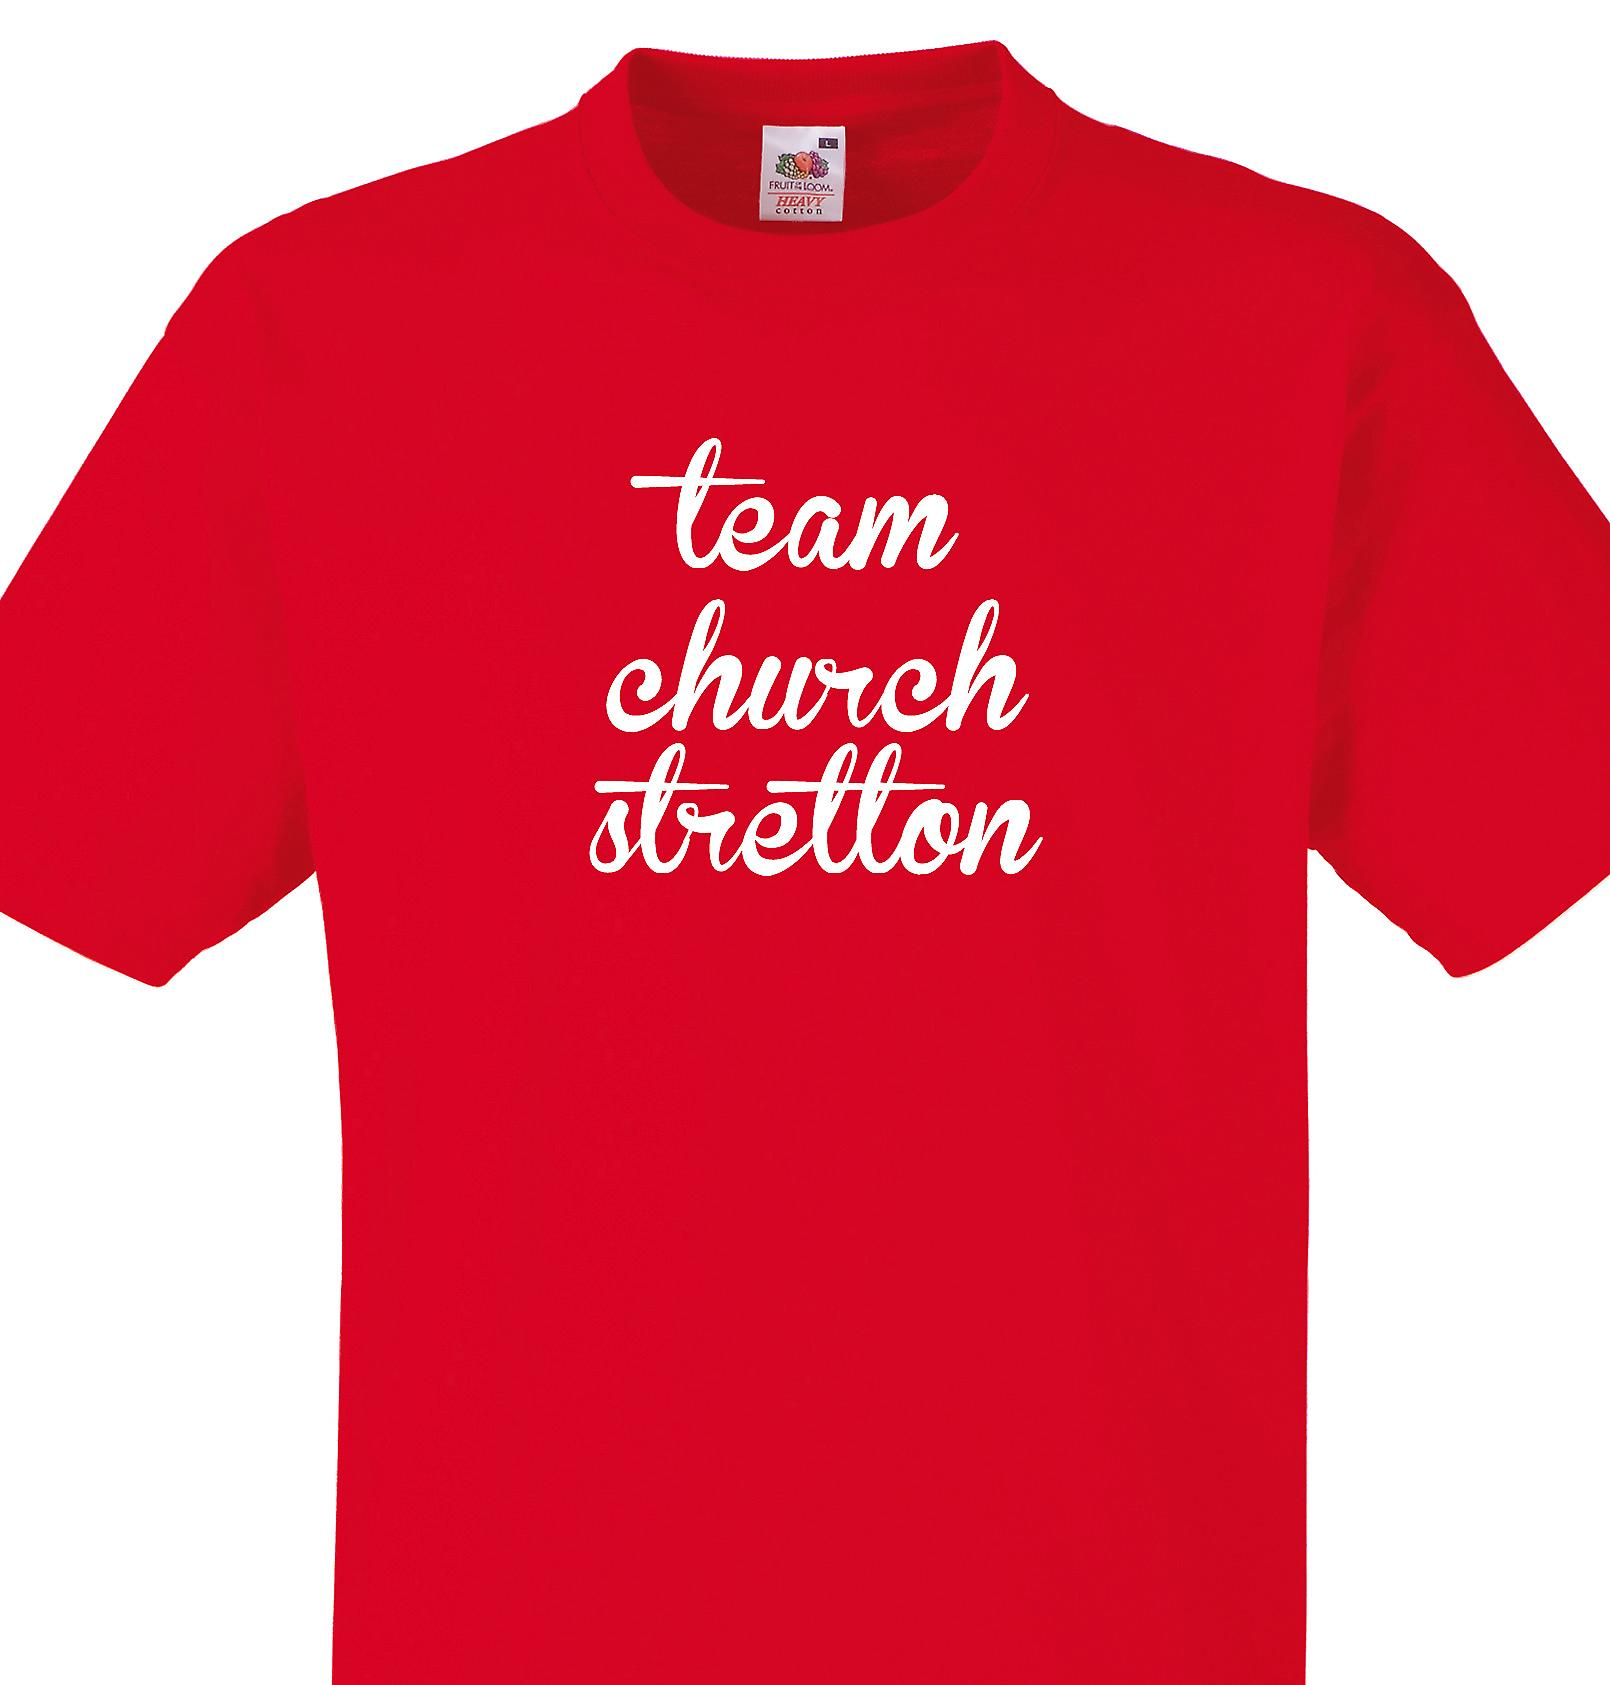 Team Church stretton Red T shirt